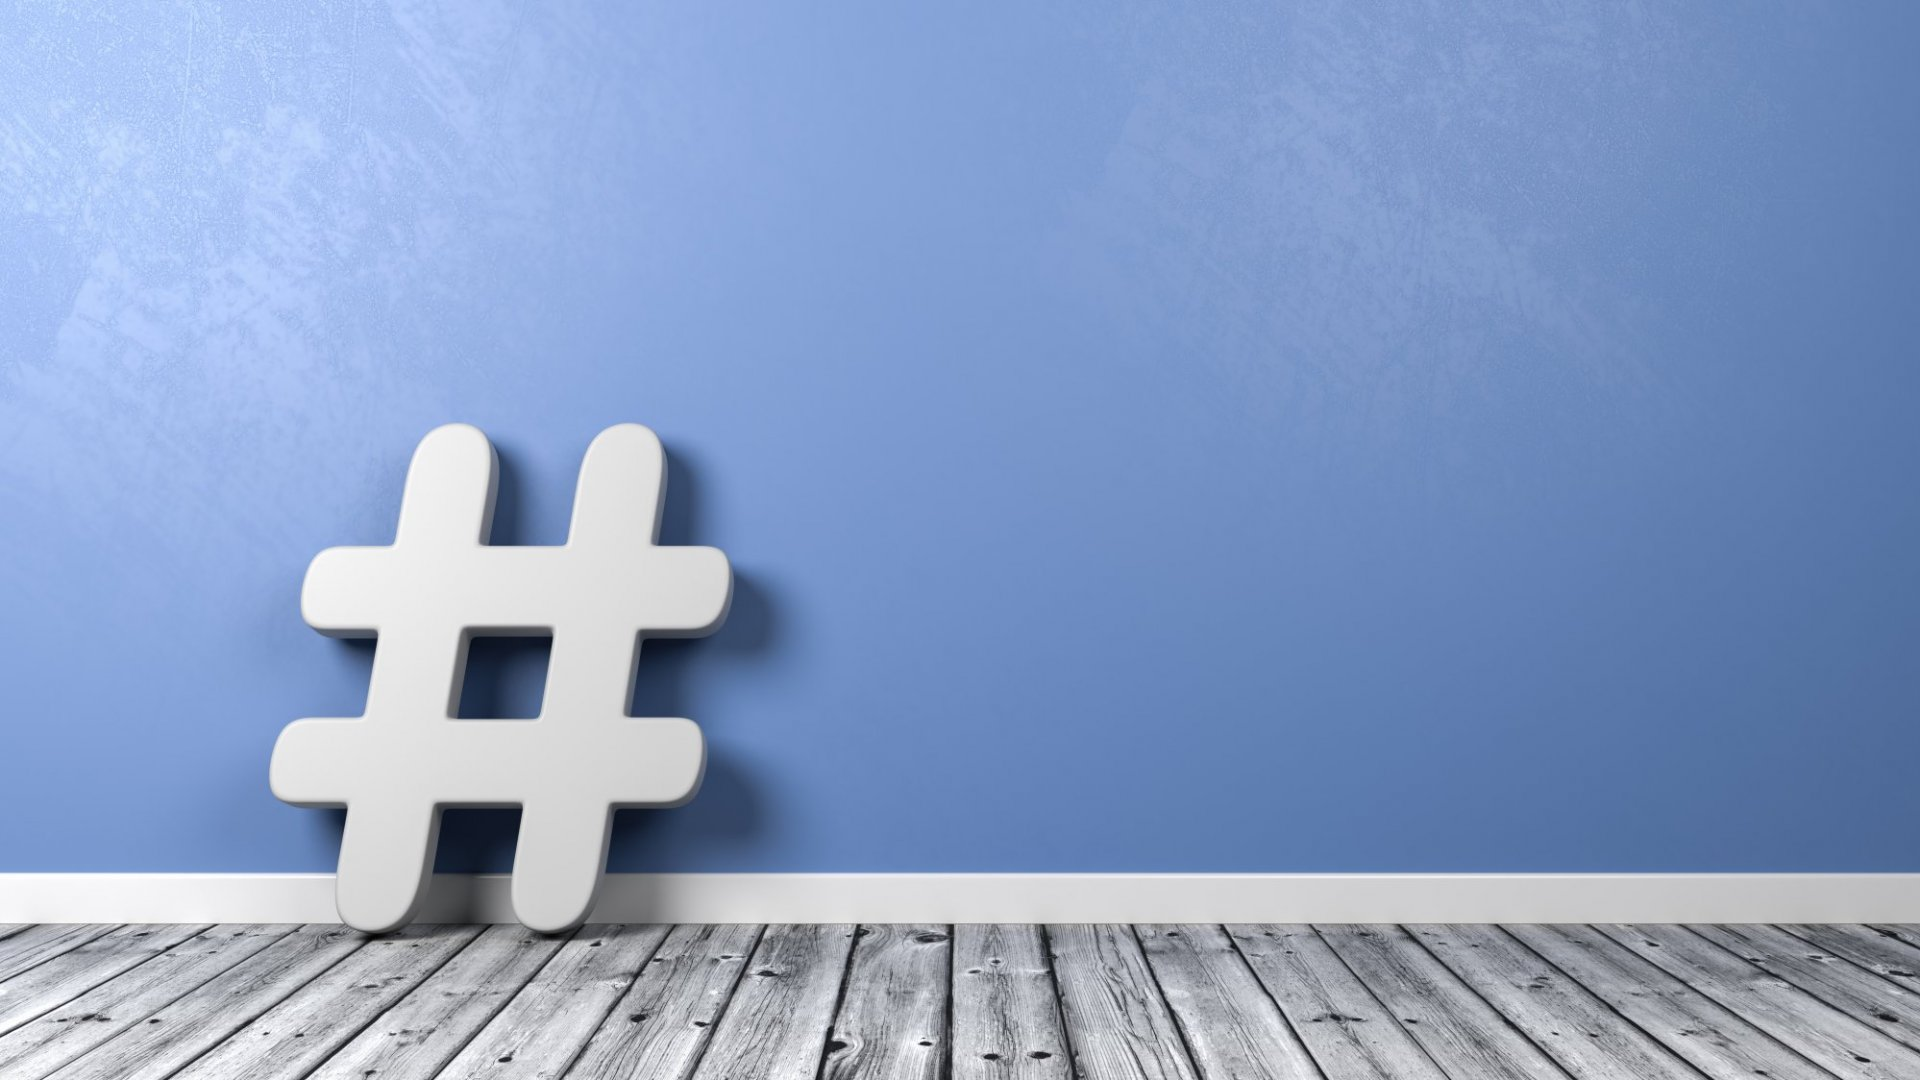 In 2019, Hashtags Will Be the Unexpected Secret to Hiring Top Talent